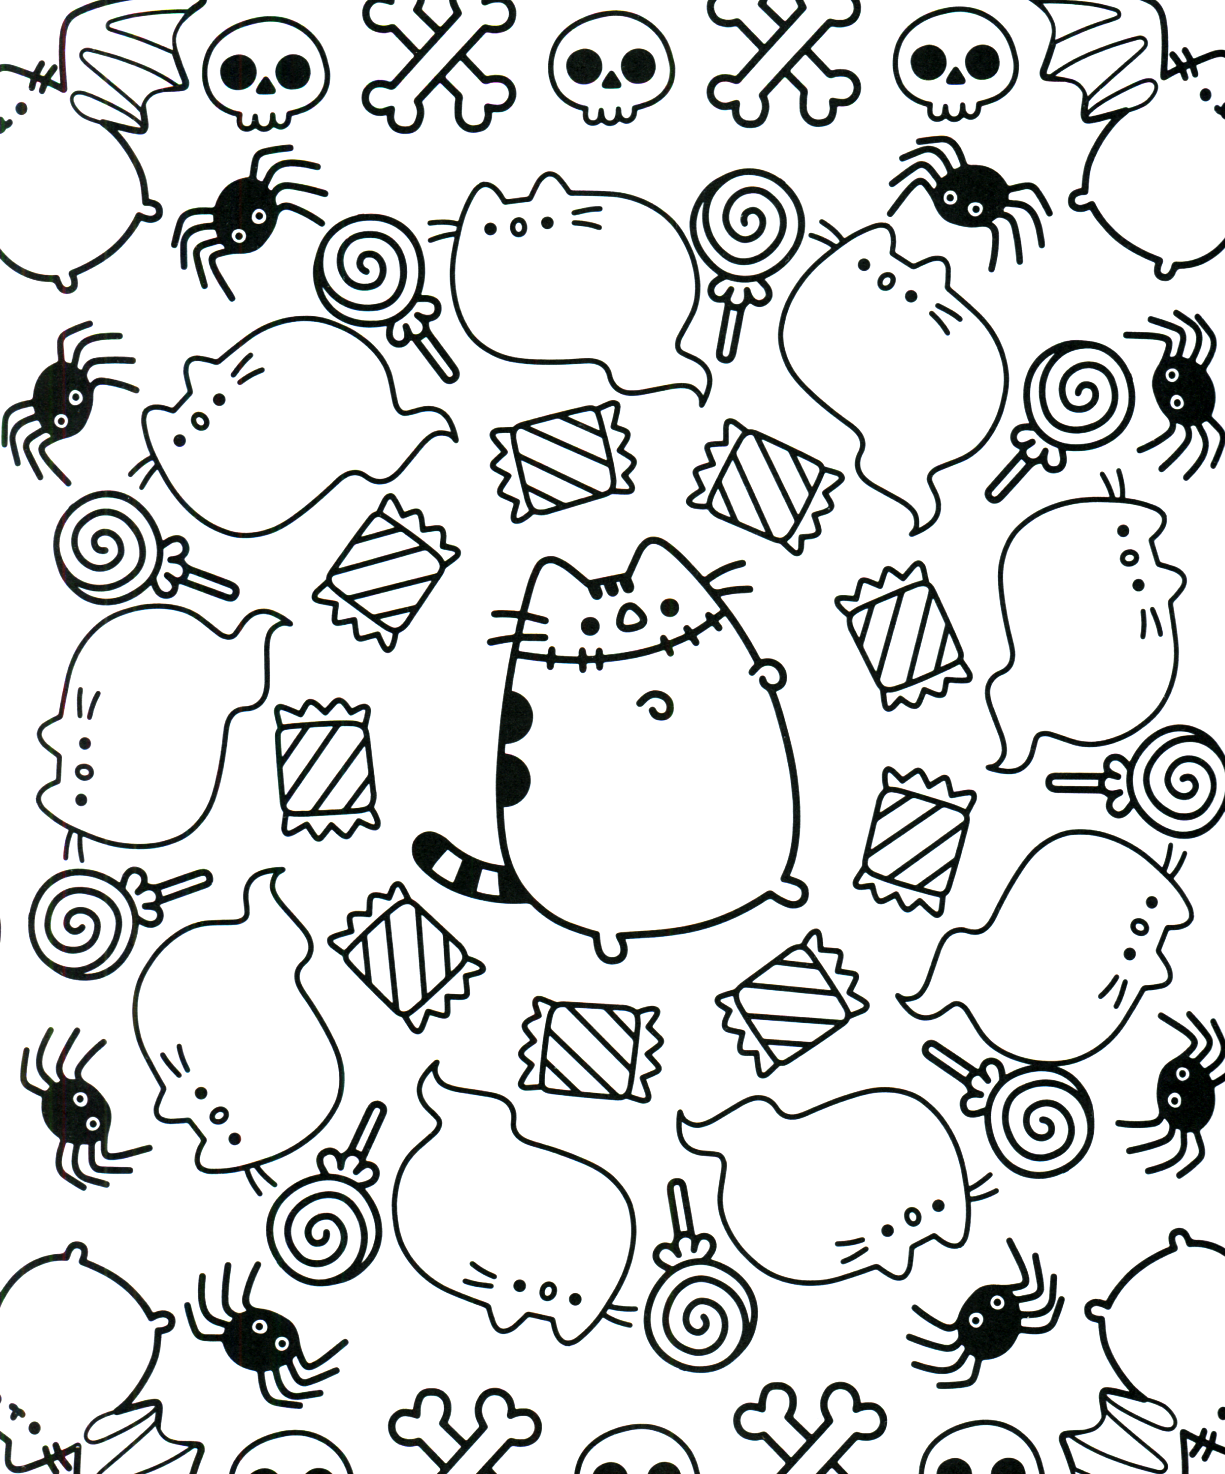 Pusheen Coloring Book Pusheen Pusheen The Cat Pusheen Coloring Pages Cute Coloring Pages Coloring Books